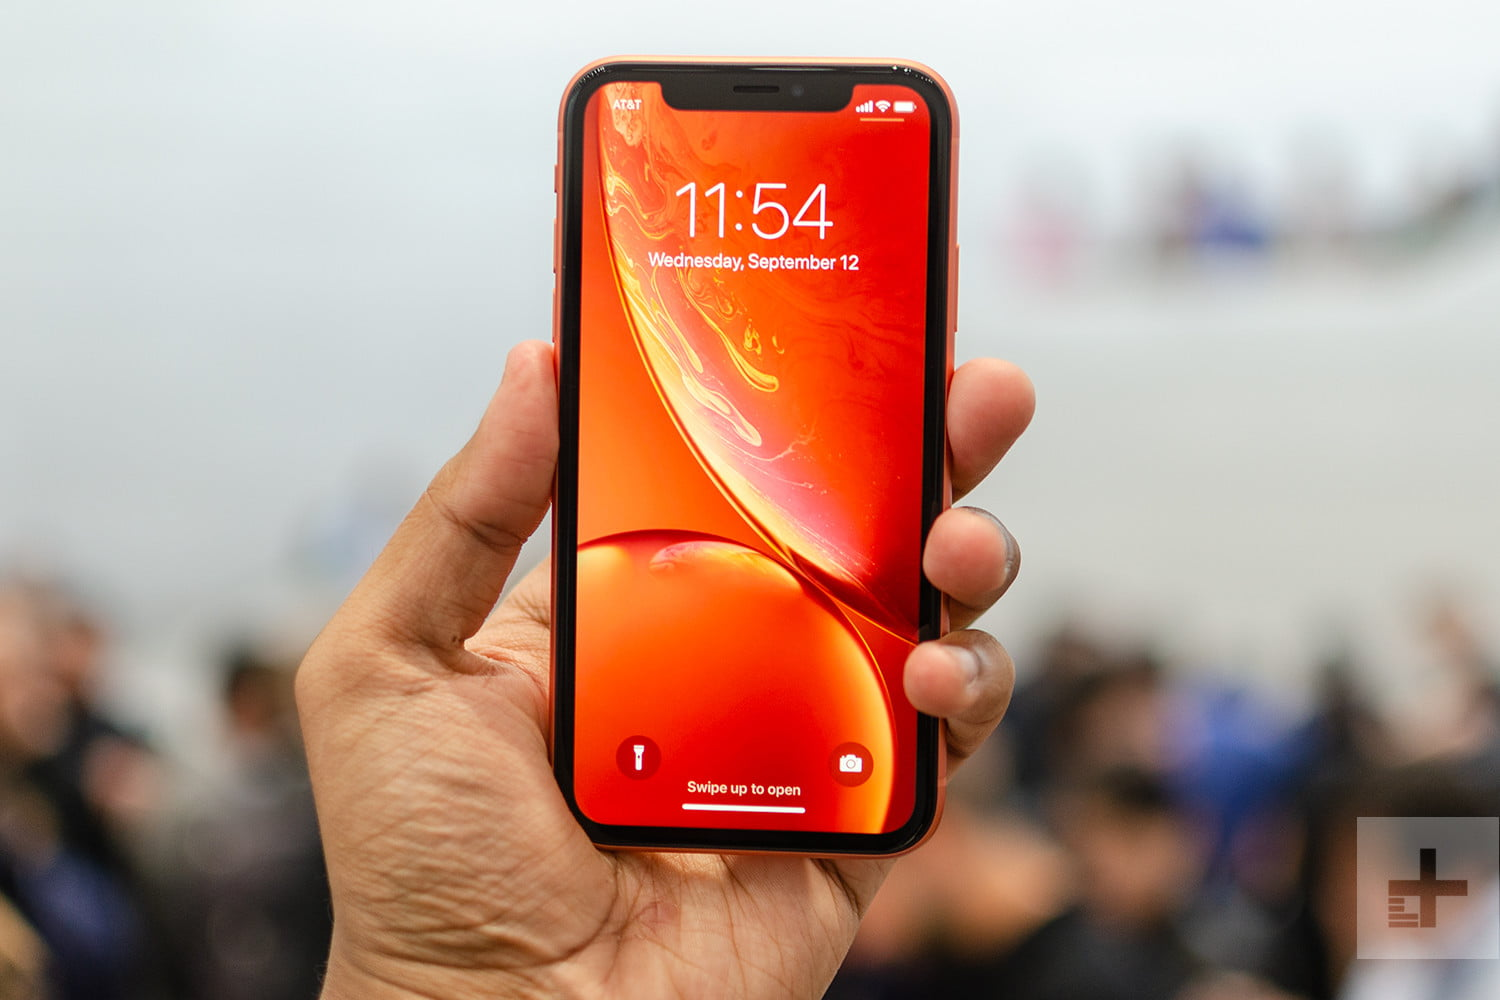 Don't Be Fooled by the Price, the iPhone XR Is More Powerful